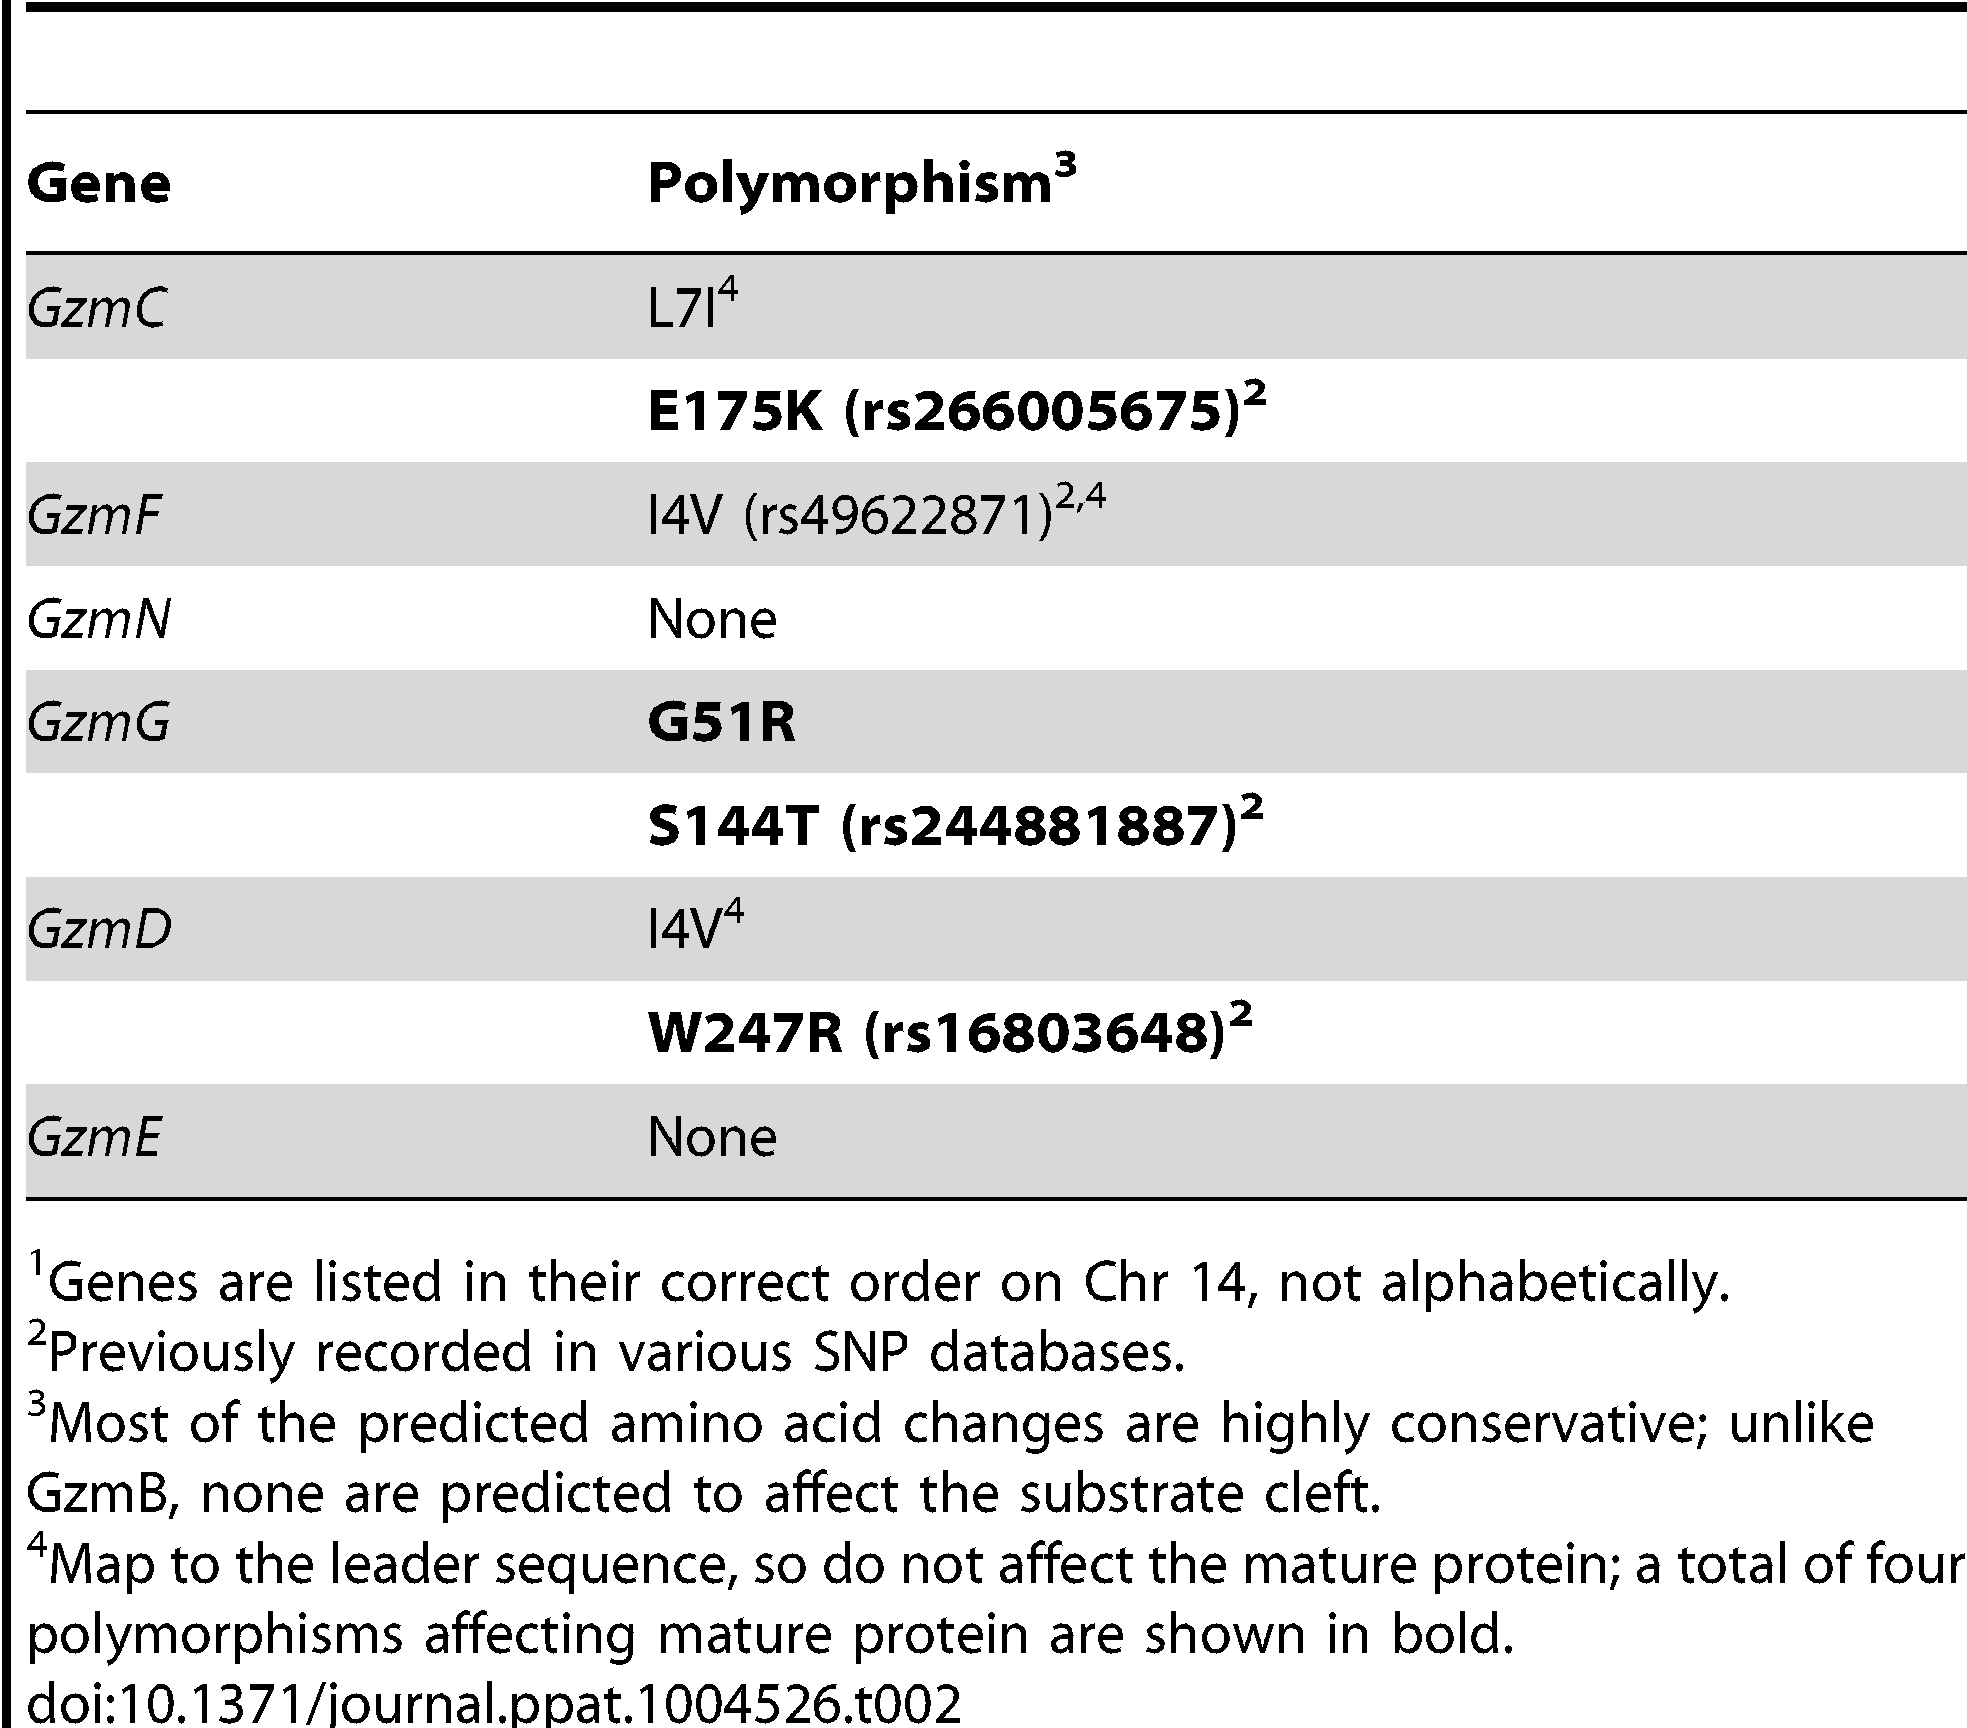 Non-synonymous polymorphisms in <i>Gzm</i> genes linked to <i>GzmB on Chr 14</i><em class=&quot;ref&quot;>1</em>.